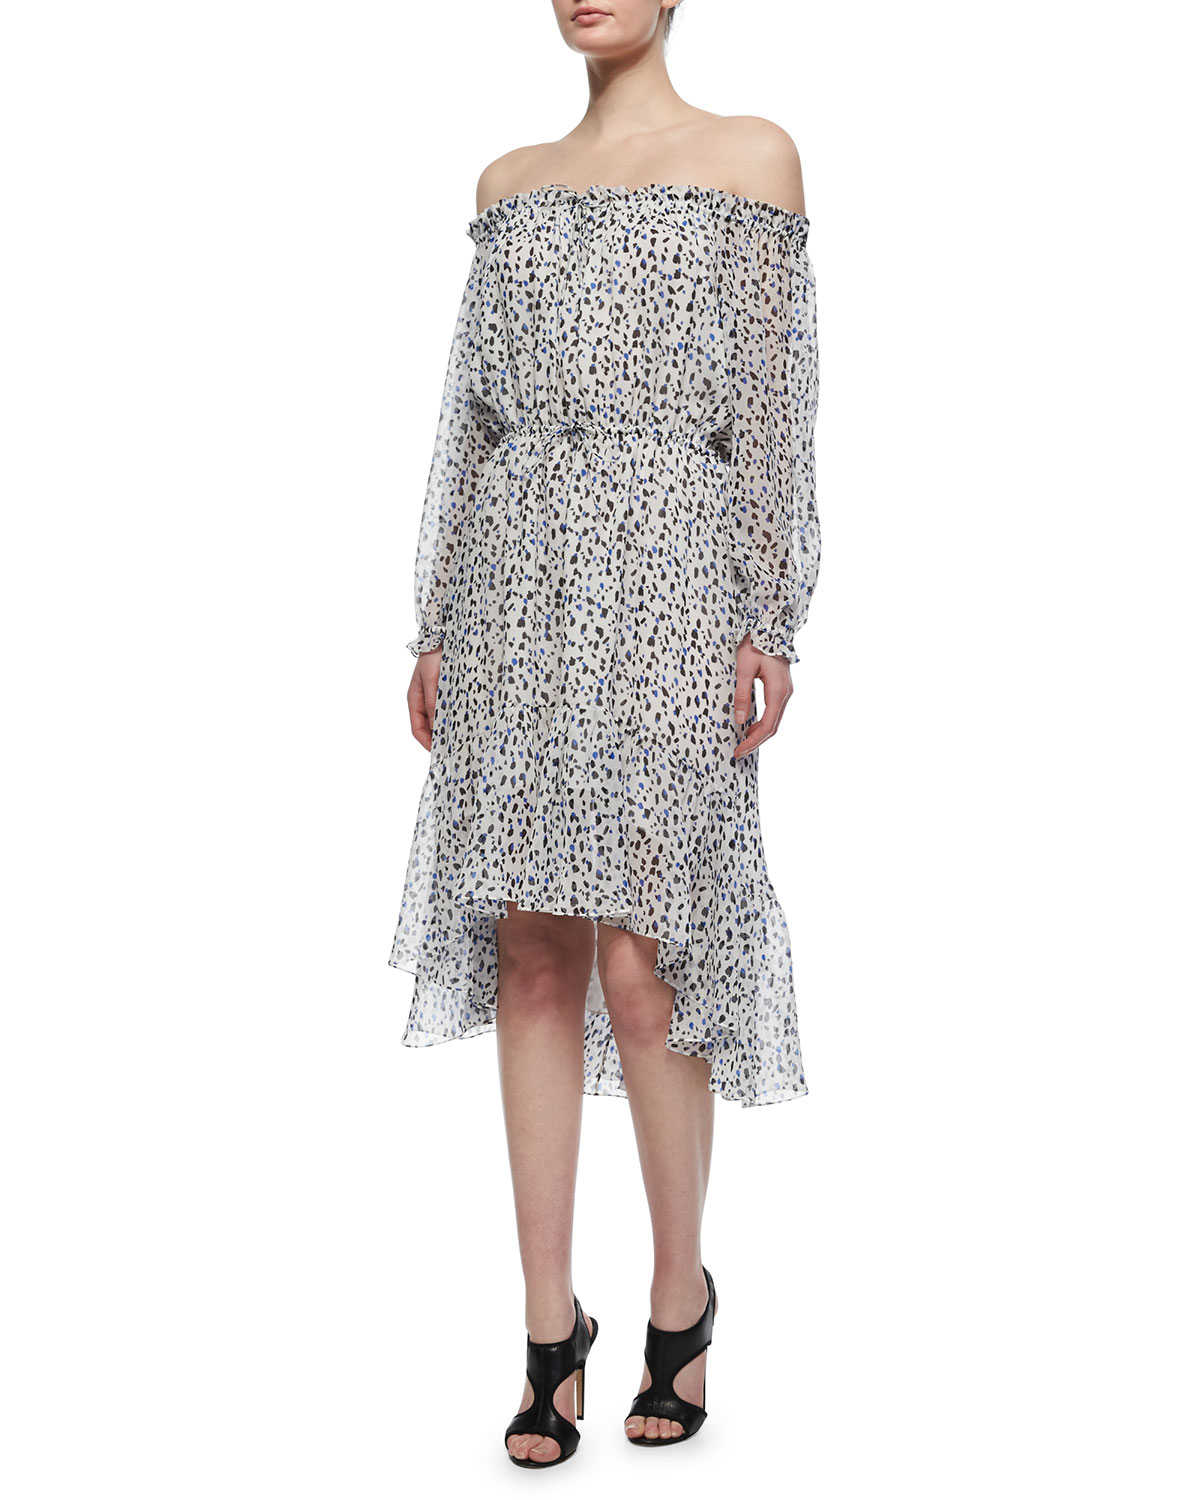 Diane von furstenberg camila animal print silk dress in for Diane von furstenberg clothes